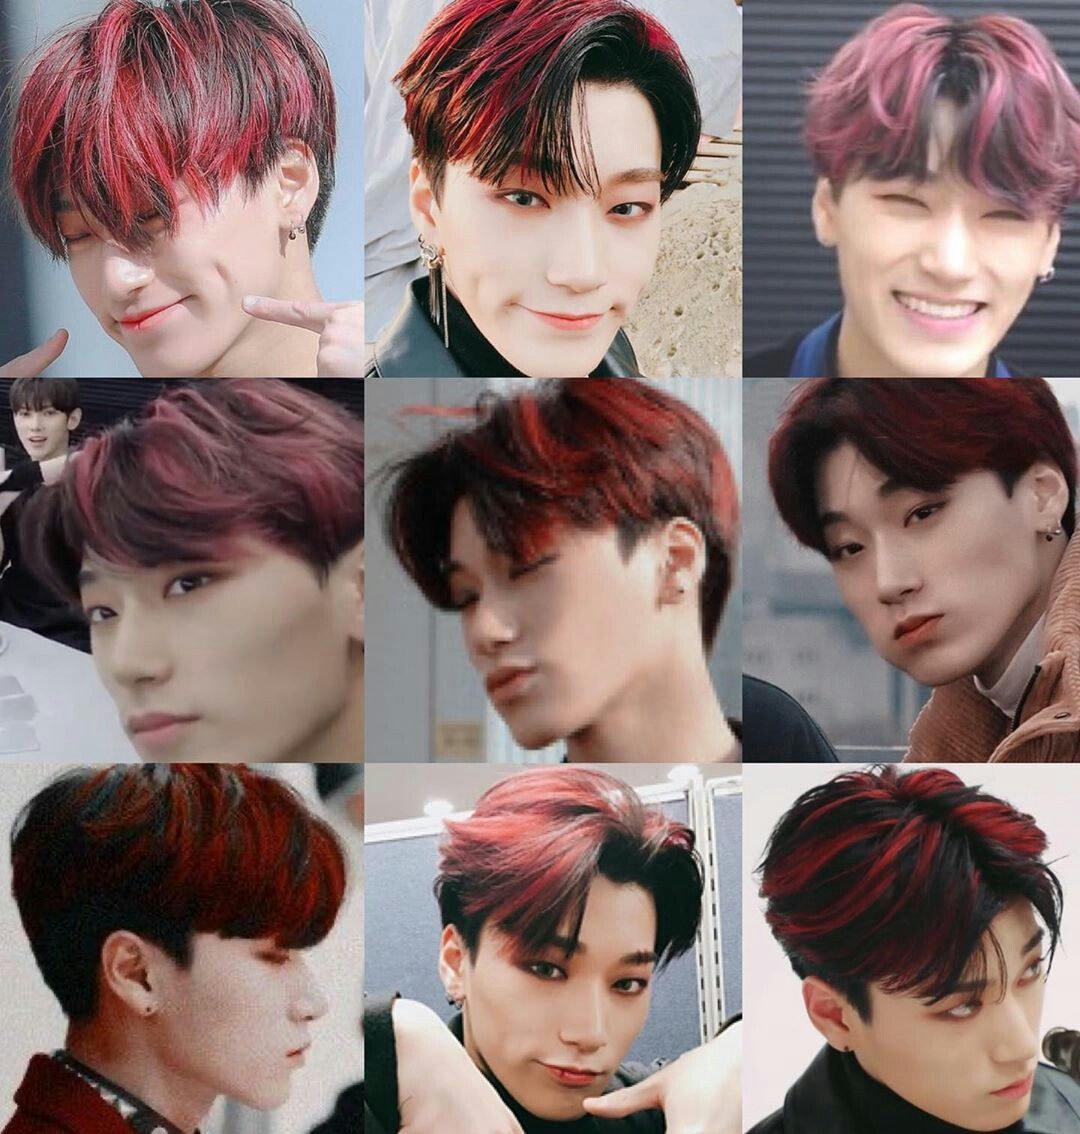 In Conclusion San Suits Every Hair Color He Has Follow Smol San For More Ateez Eightmakesoneteam 8makes1 Kpop Hair Kpop Hair Color Hair Color